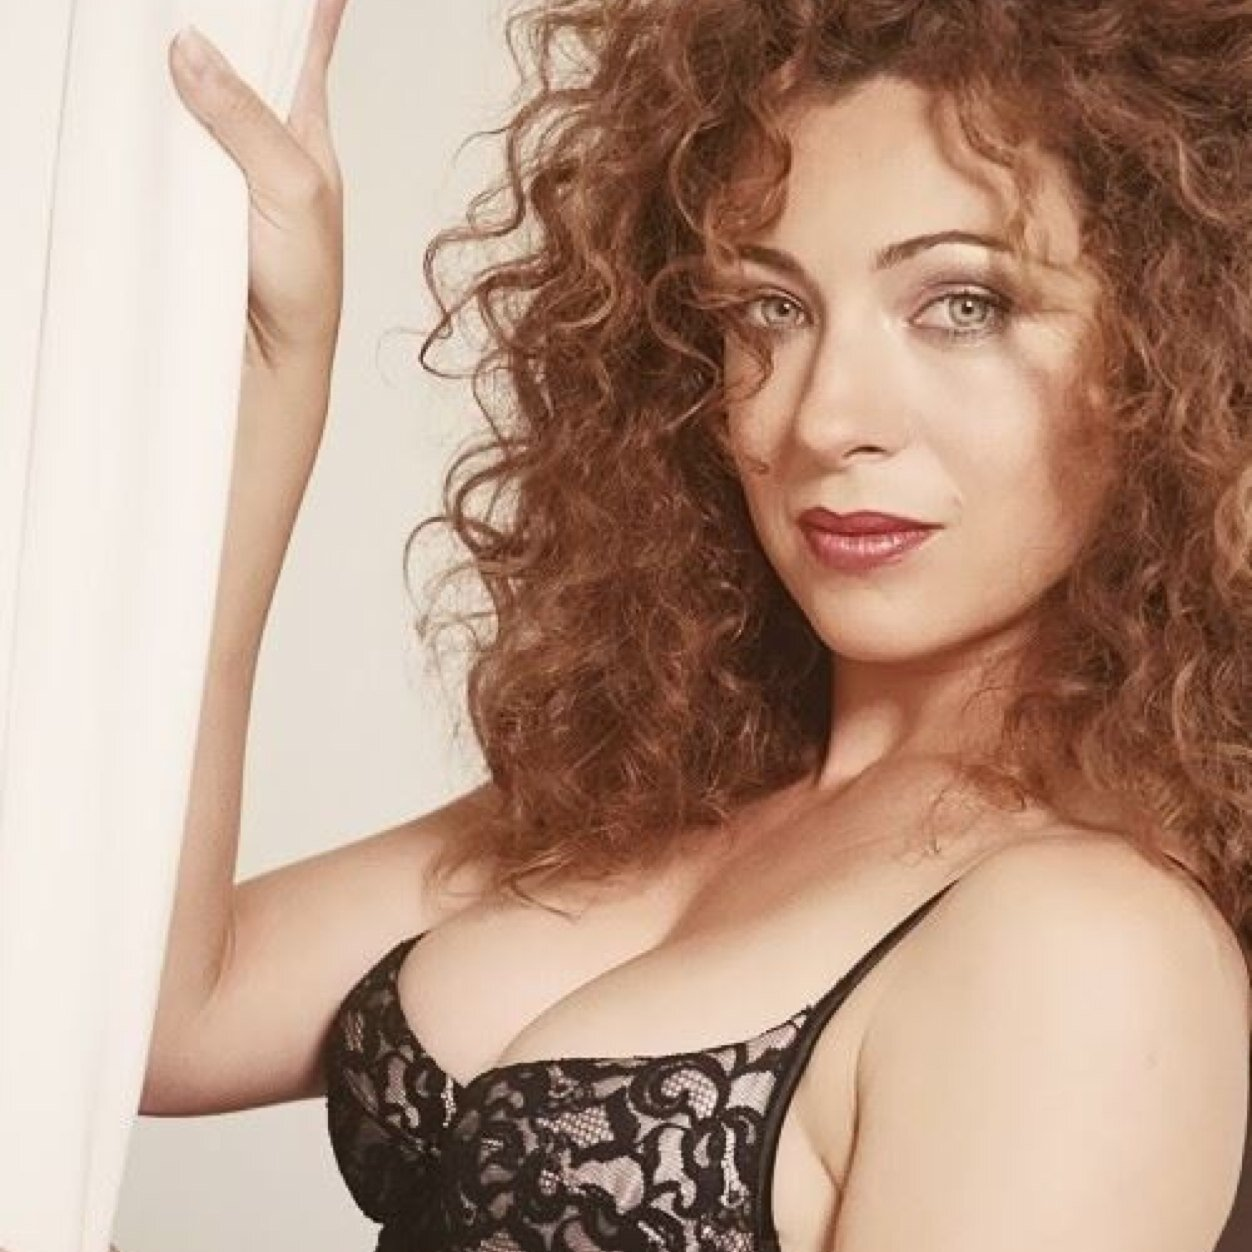 Due Alex kingston river song nude confirm. join